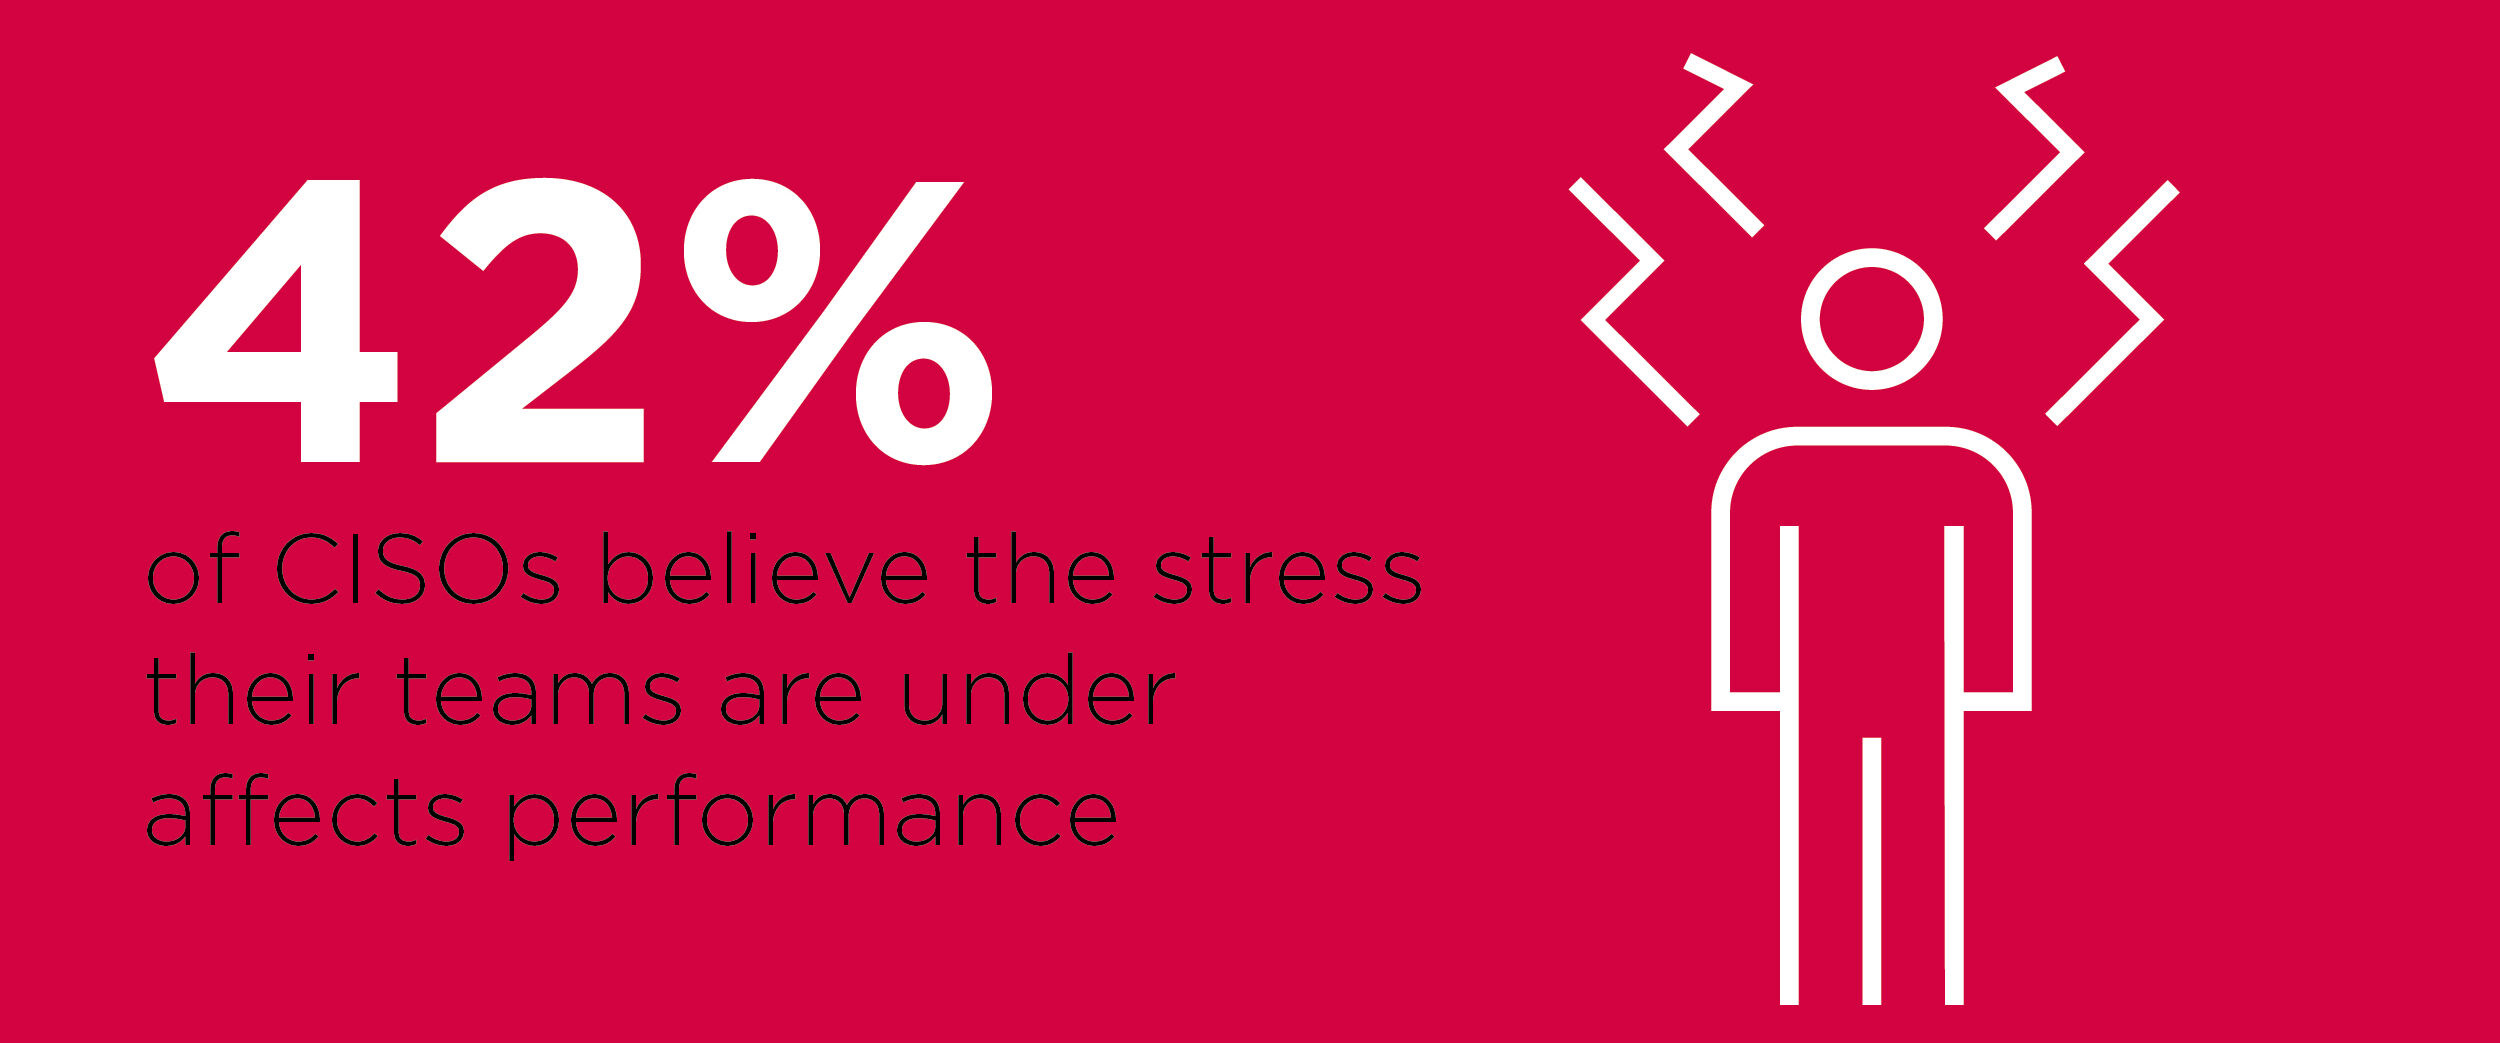 Stress insights from the ClubCISO Information Security Maturity Survey